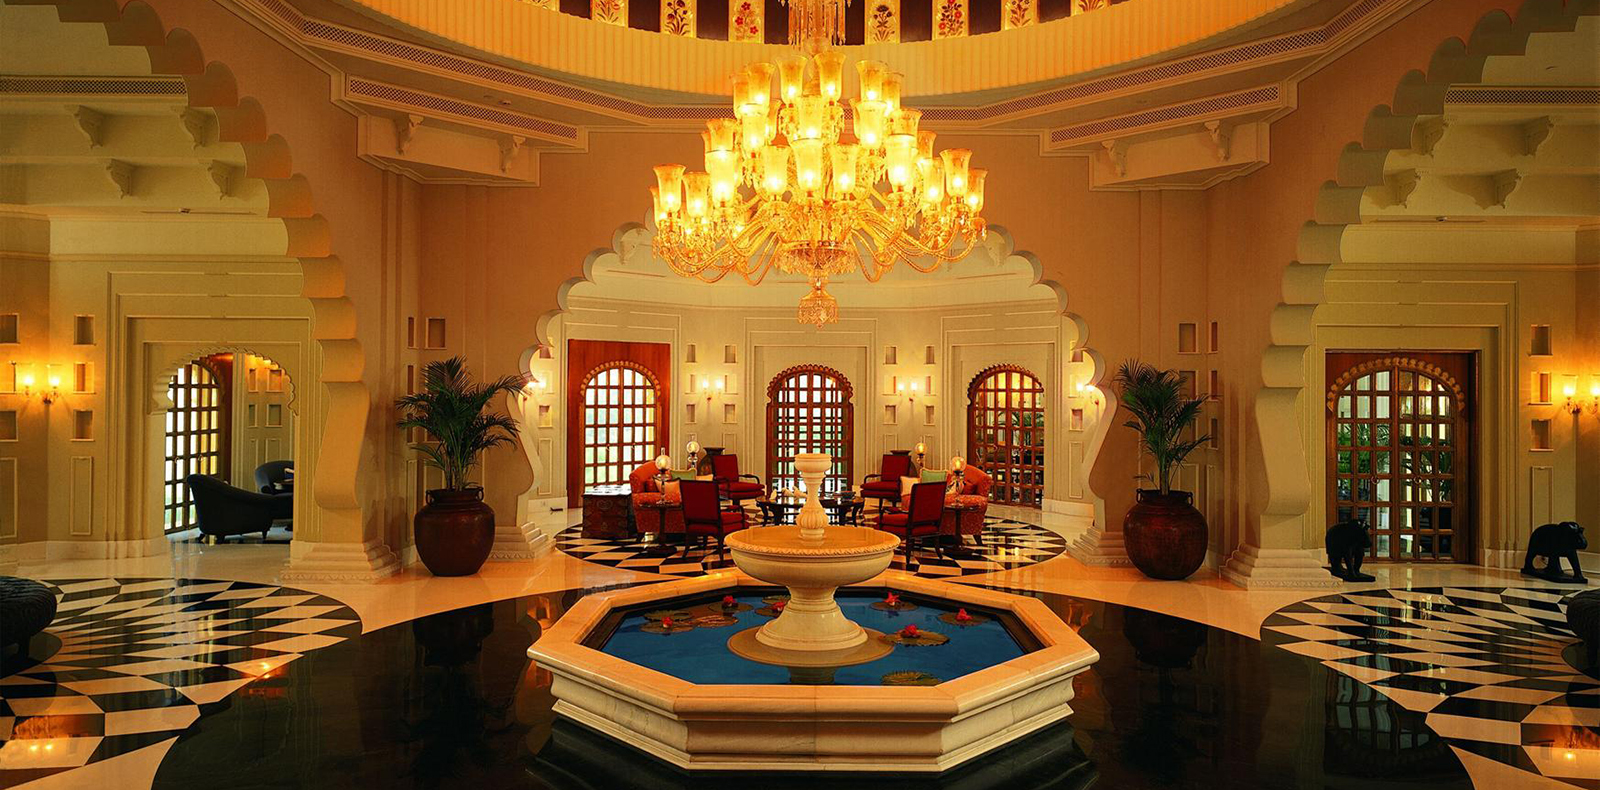 India luxury meditation course in elegant hotels for Top design hotels india